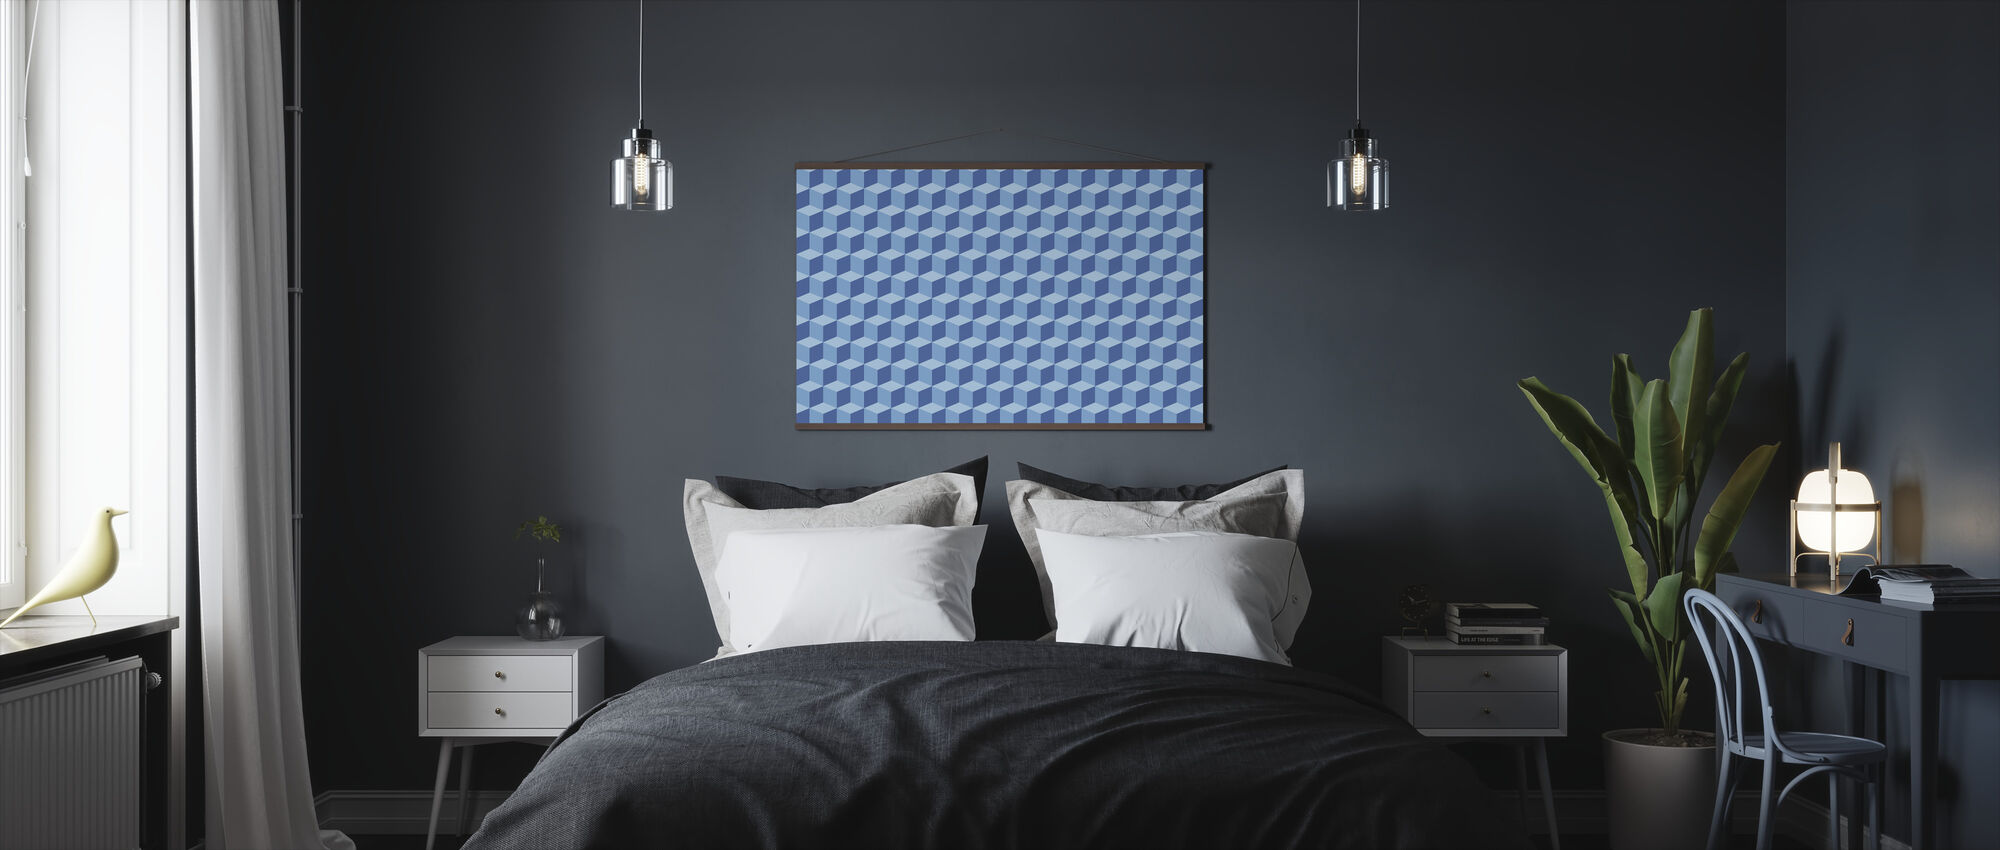 Wall of Boxes - Poster - Bedroom